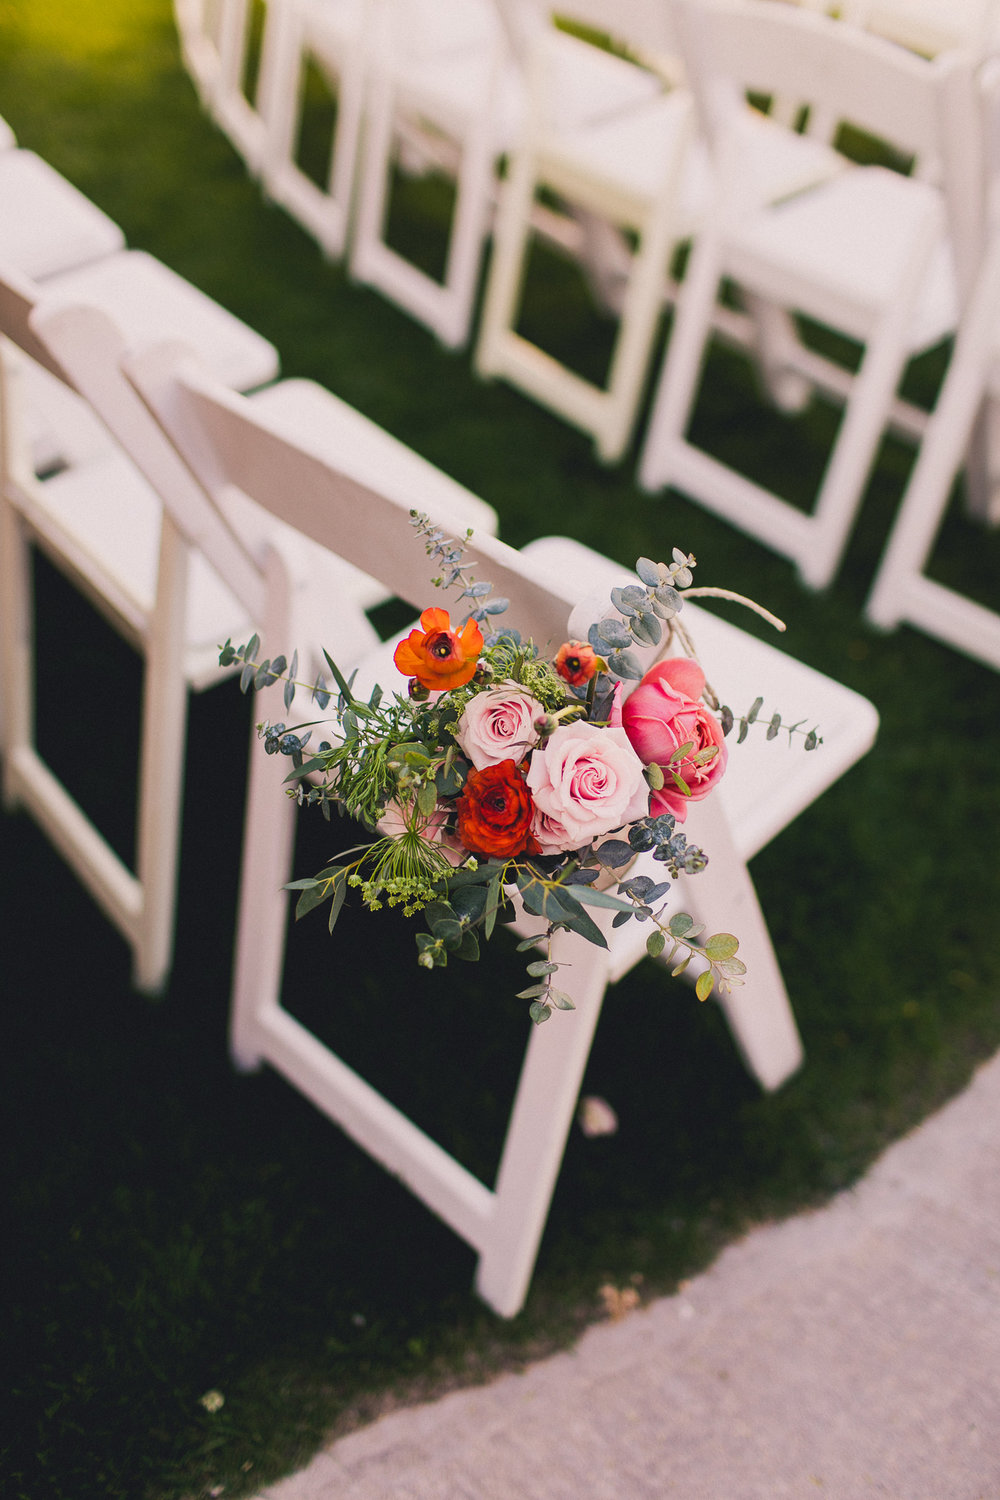 Colorful Springtime Wedding at Wrigley Mansion - Ceremony Chair Flowers